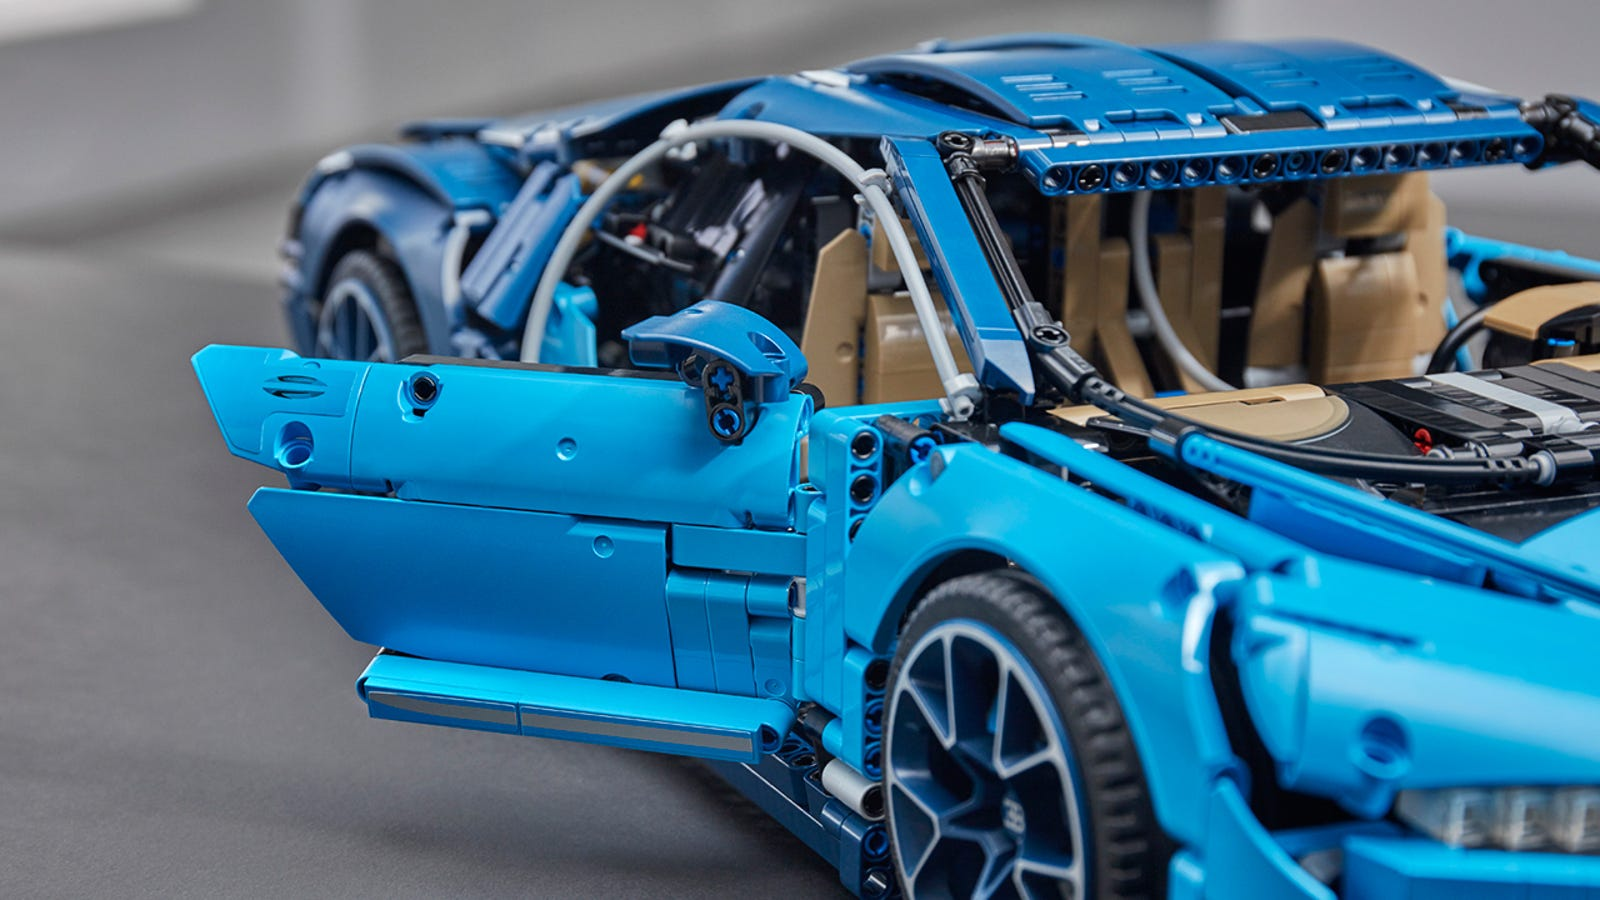 Doors that open and close are a standard feature on both the real and Lego versions of the Chiron.